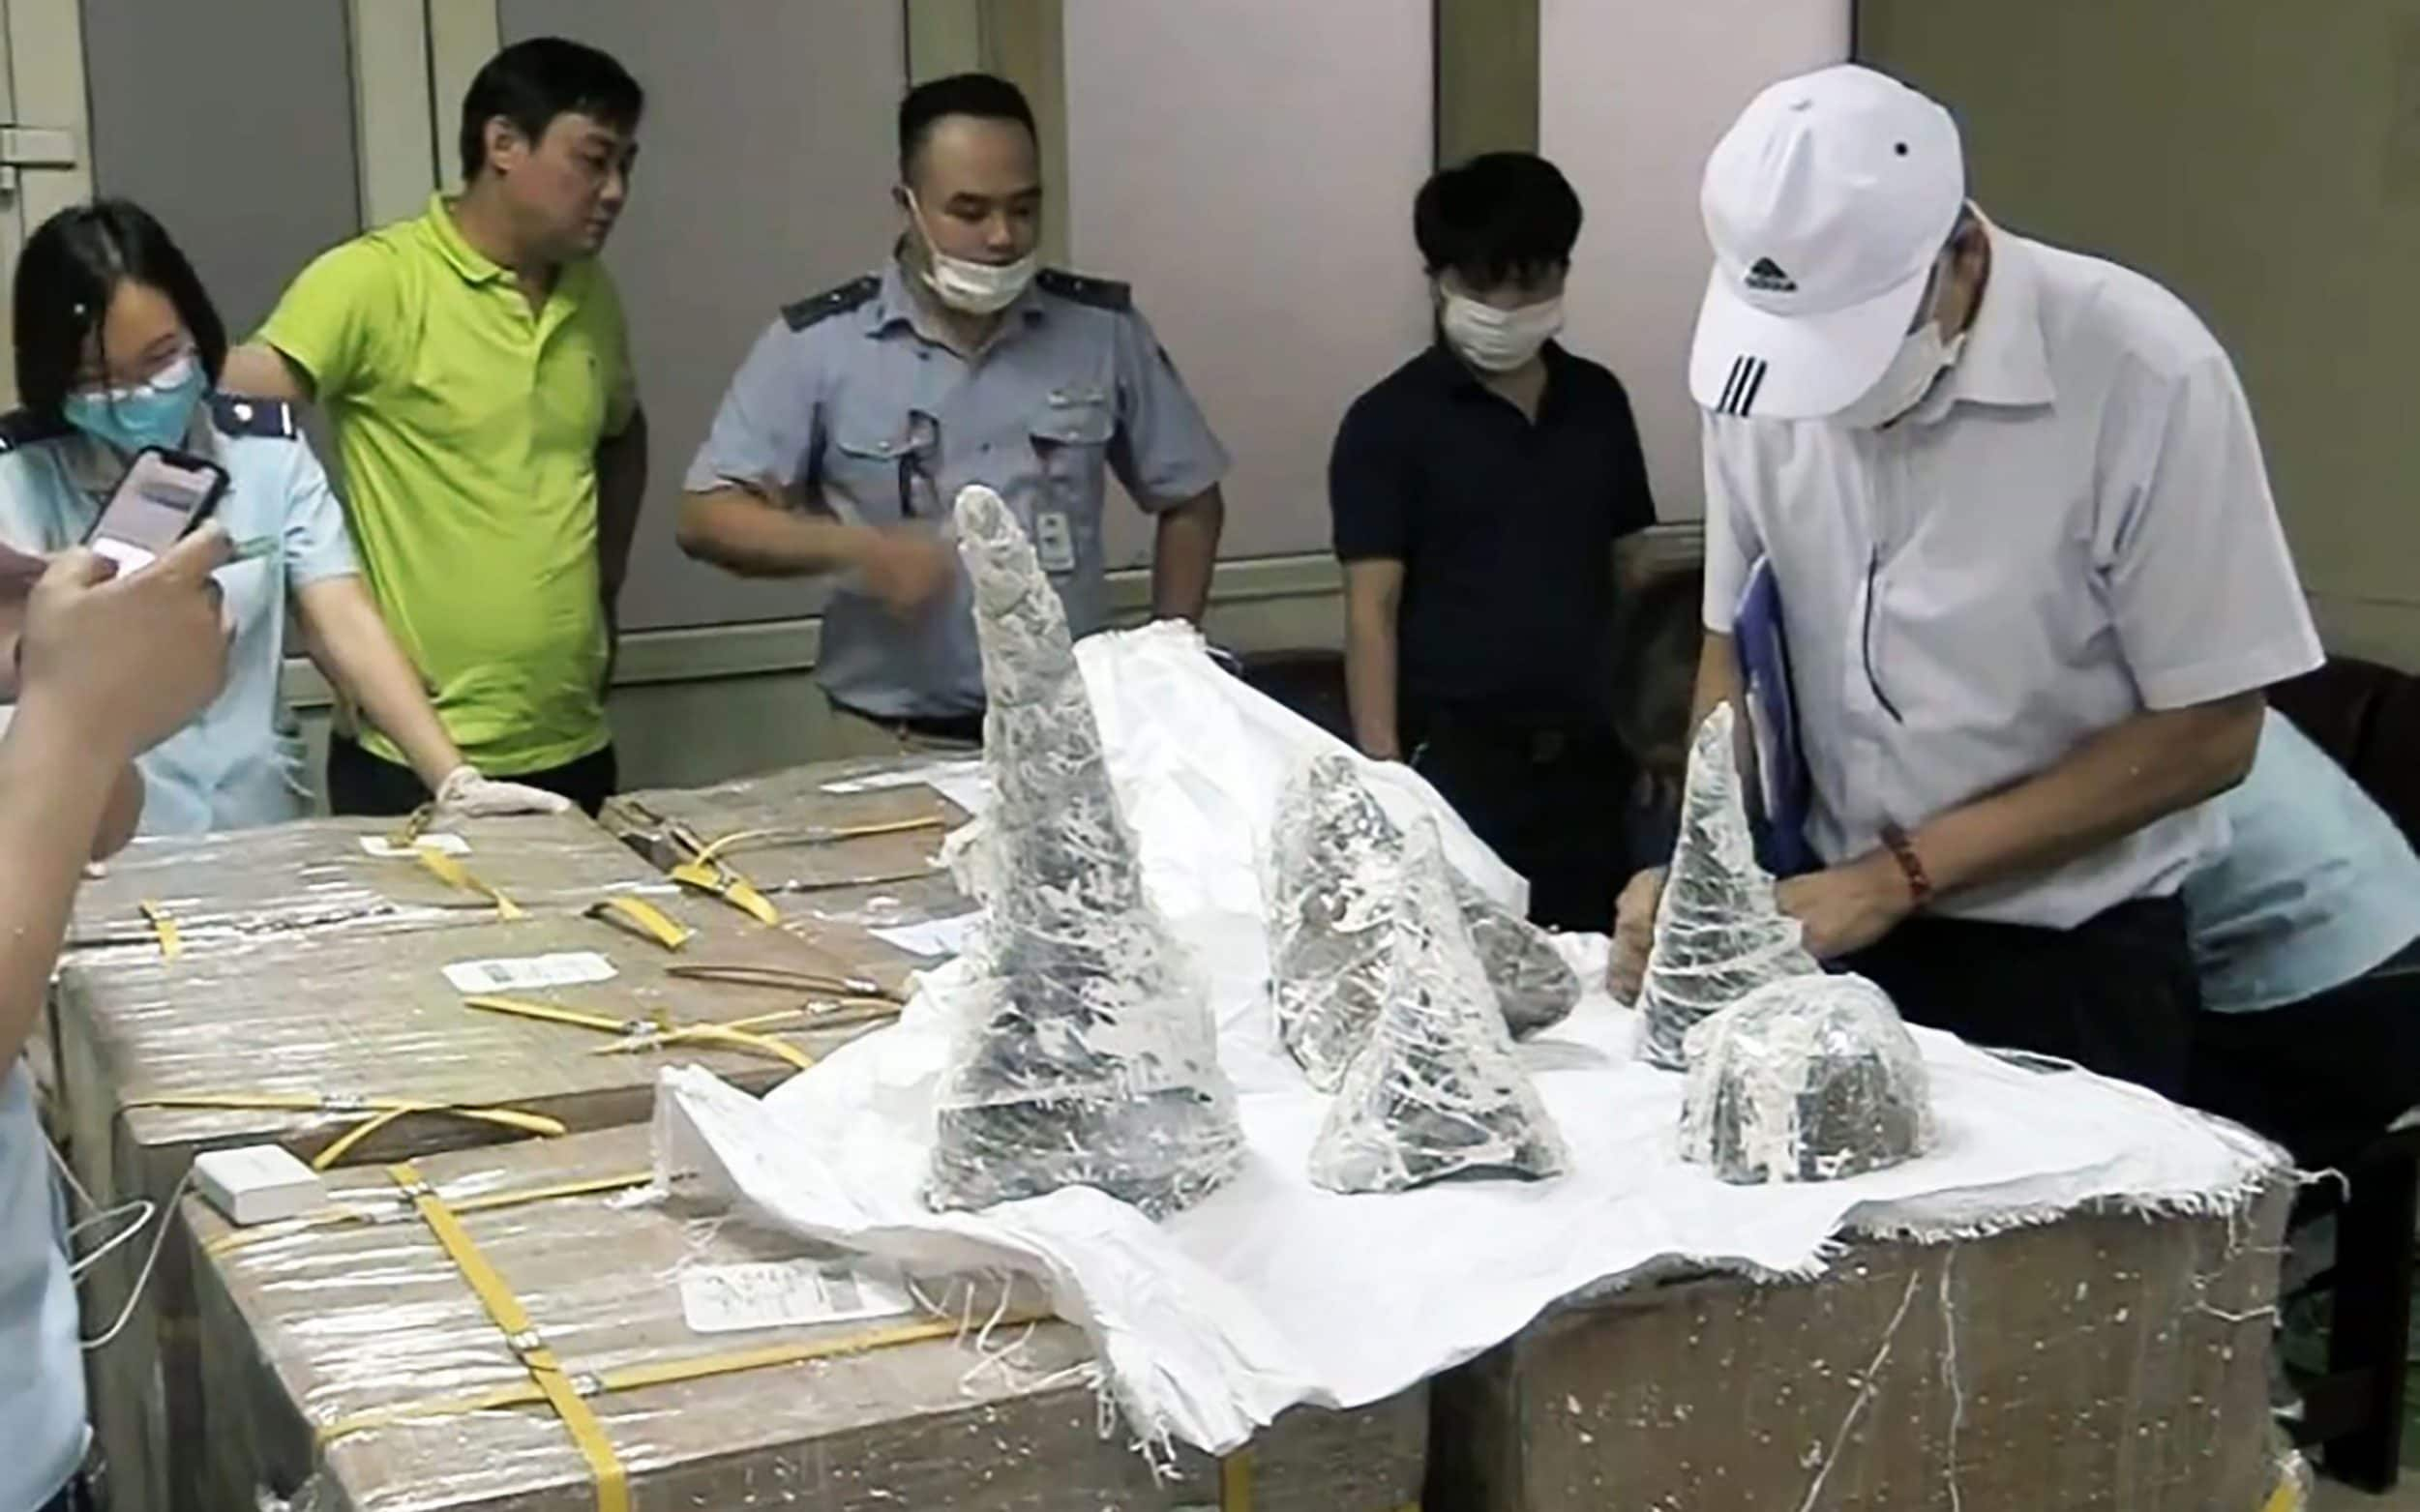 Vietnam seizes 125 kg of rhino horn worth £6m concealed in plaster shipment